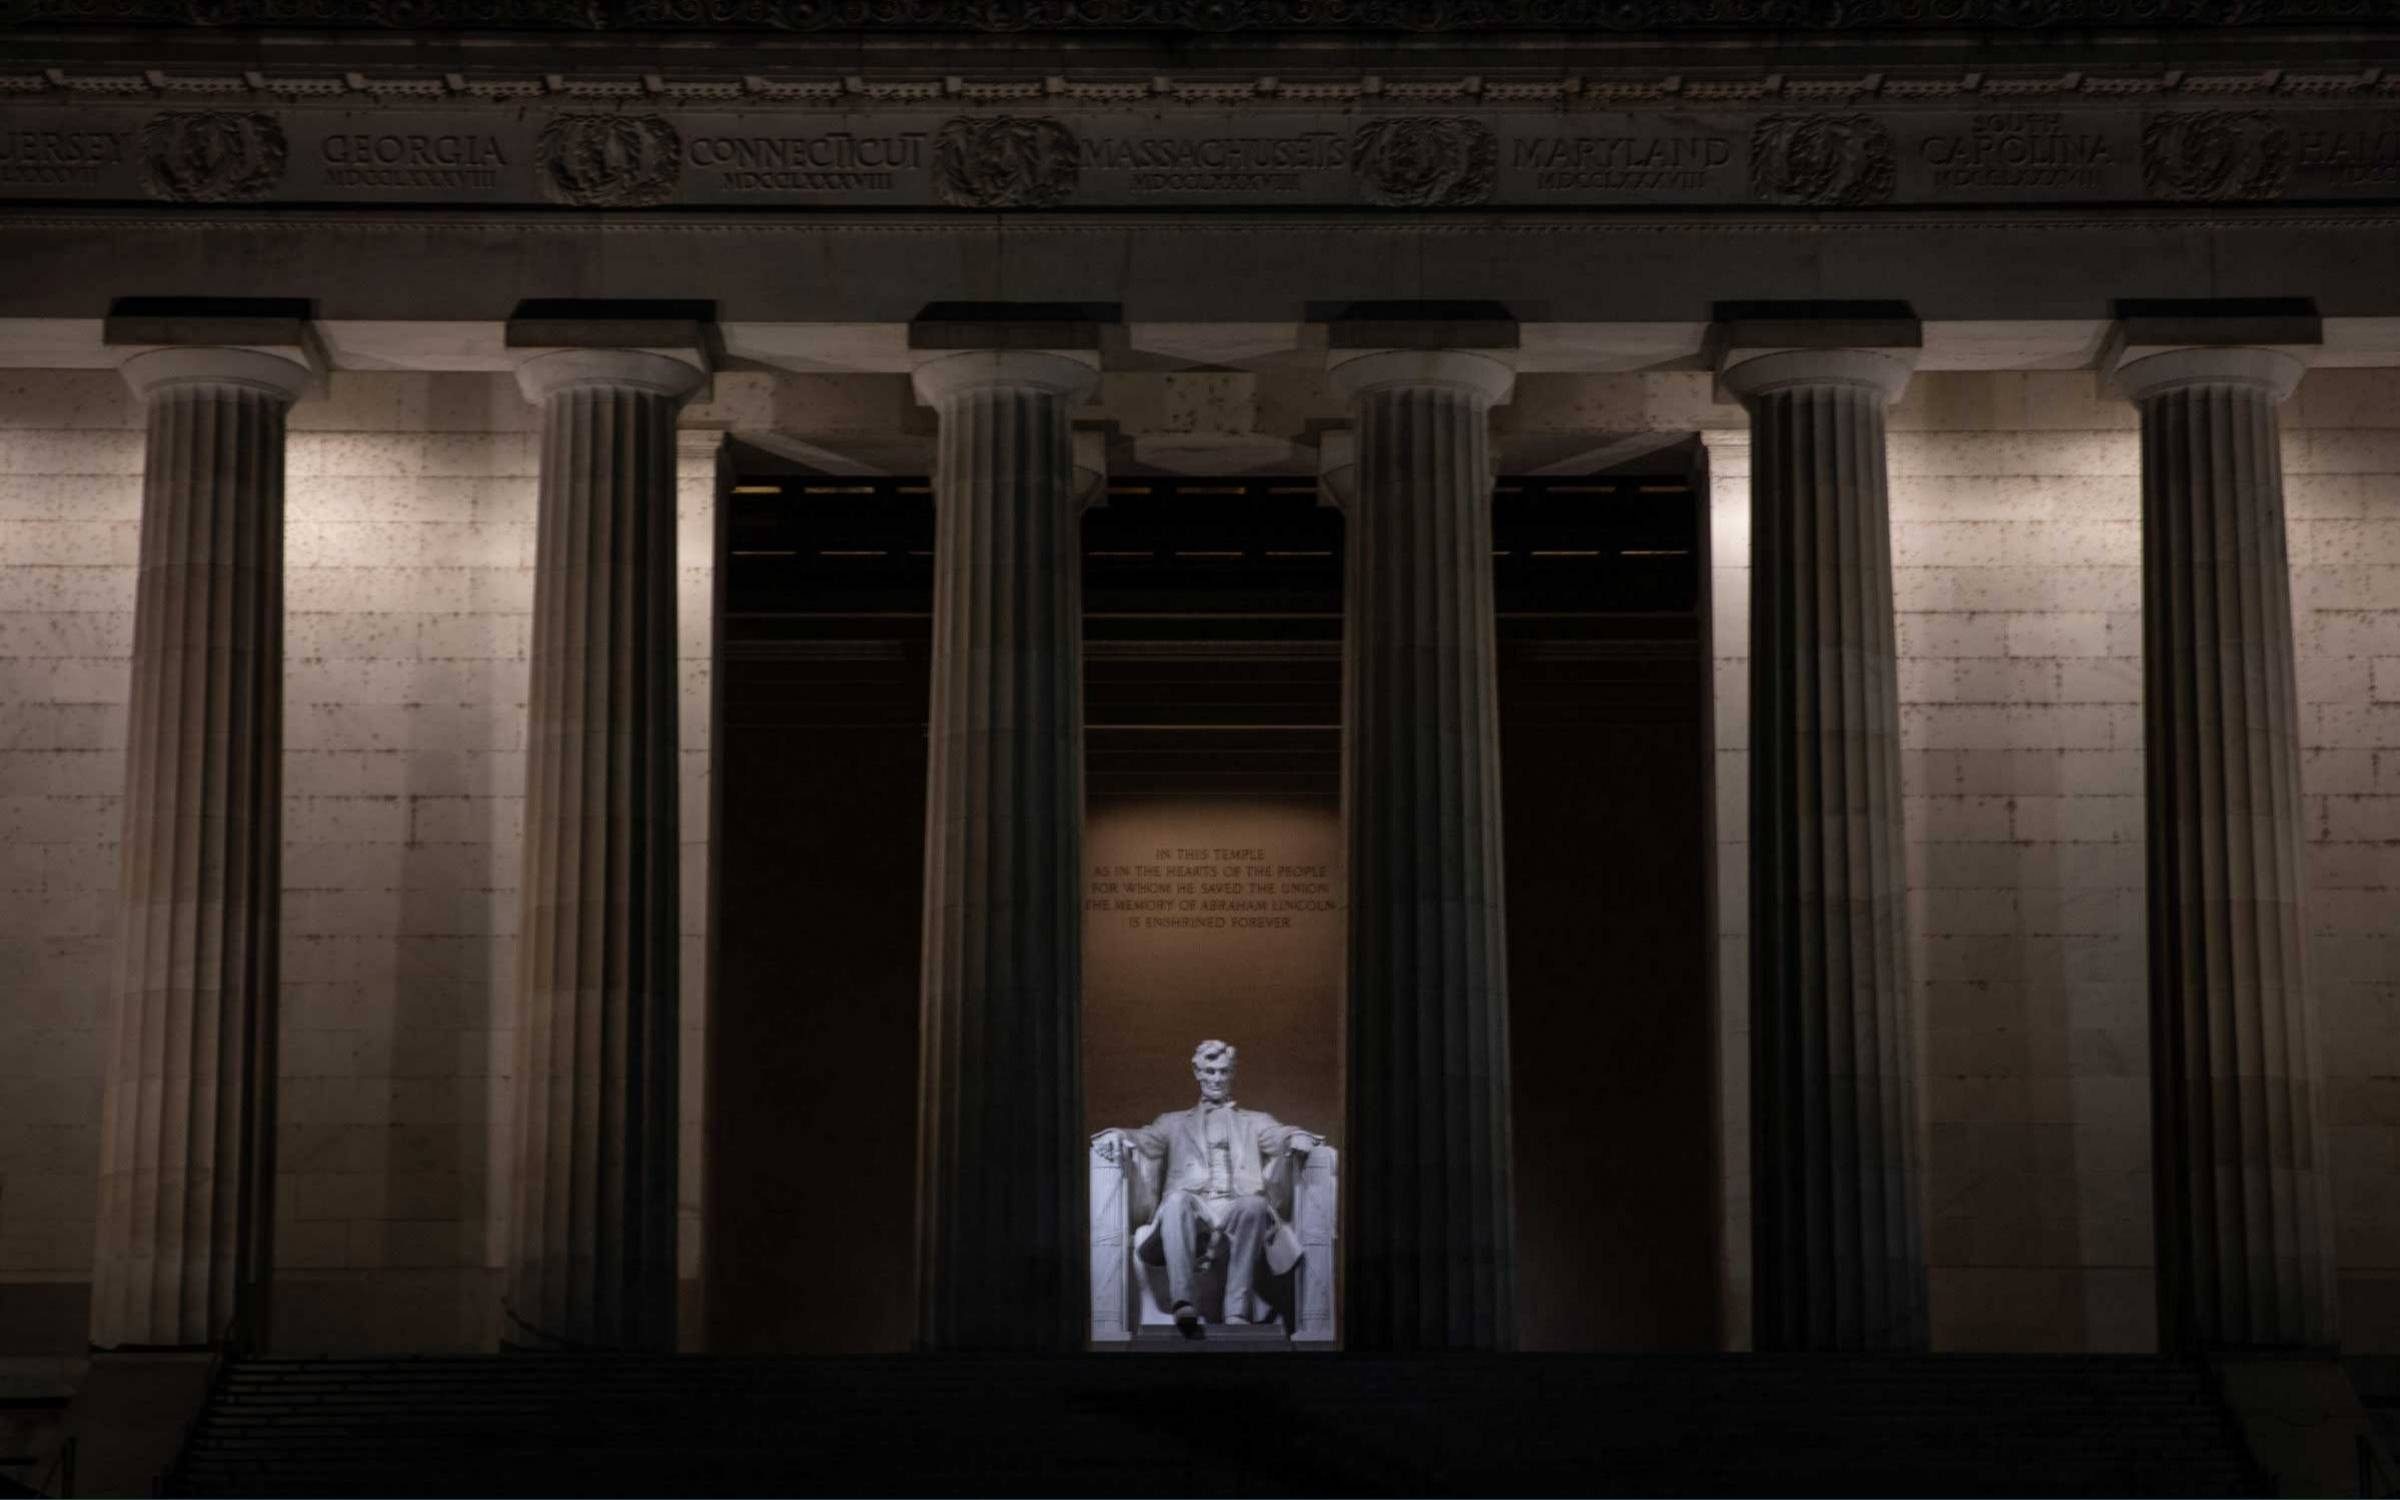 The Lincoln Memorial, Washington D.C. Credit: Getty Images.